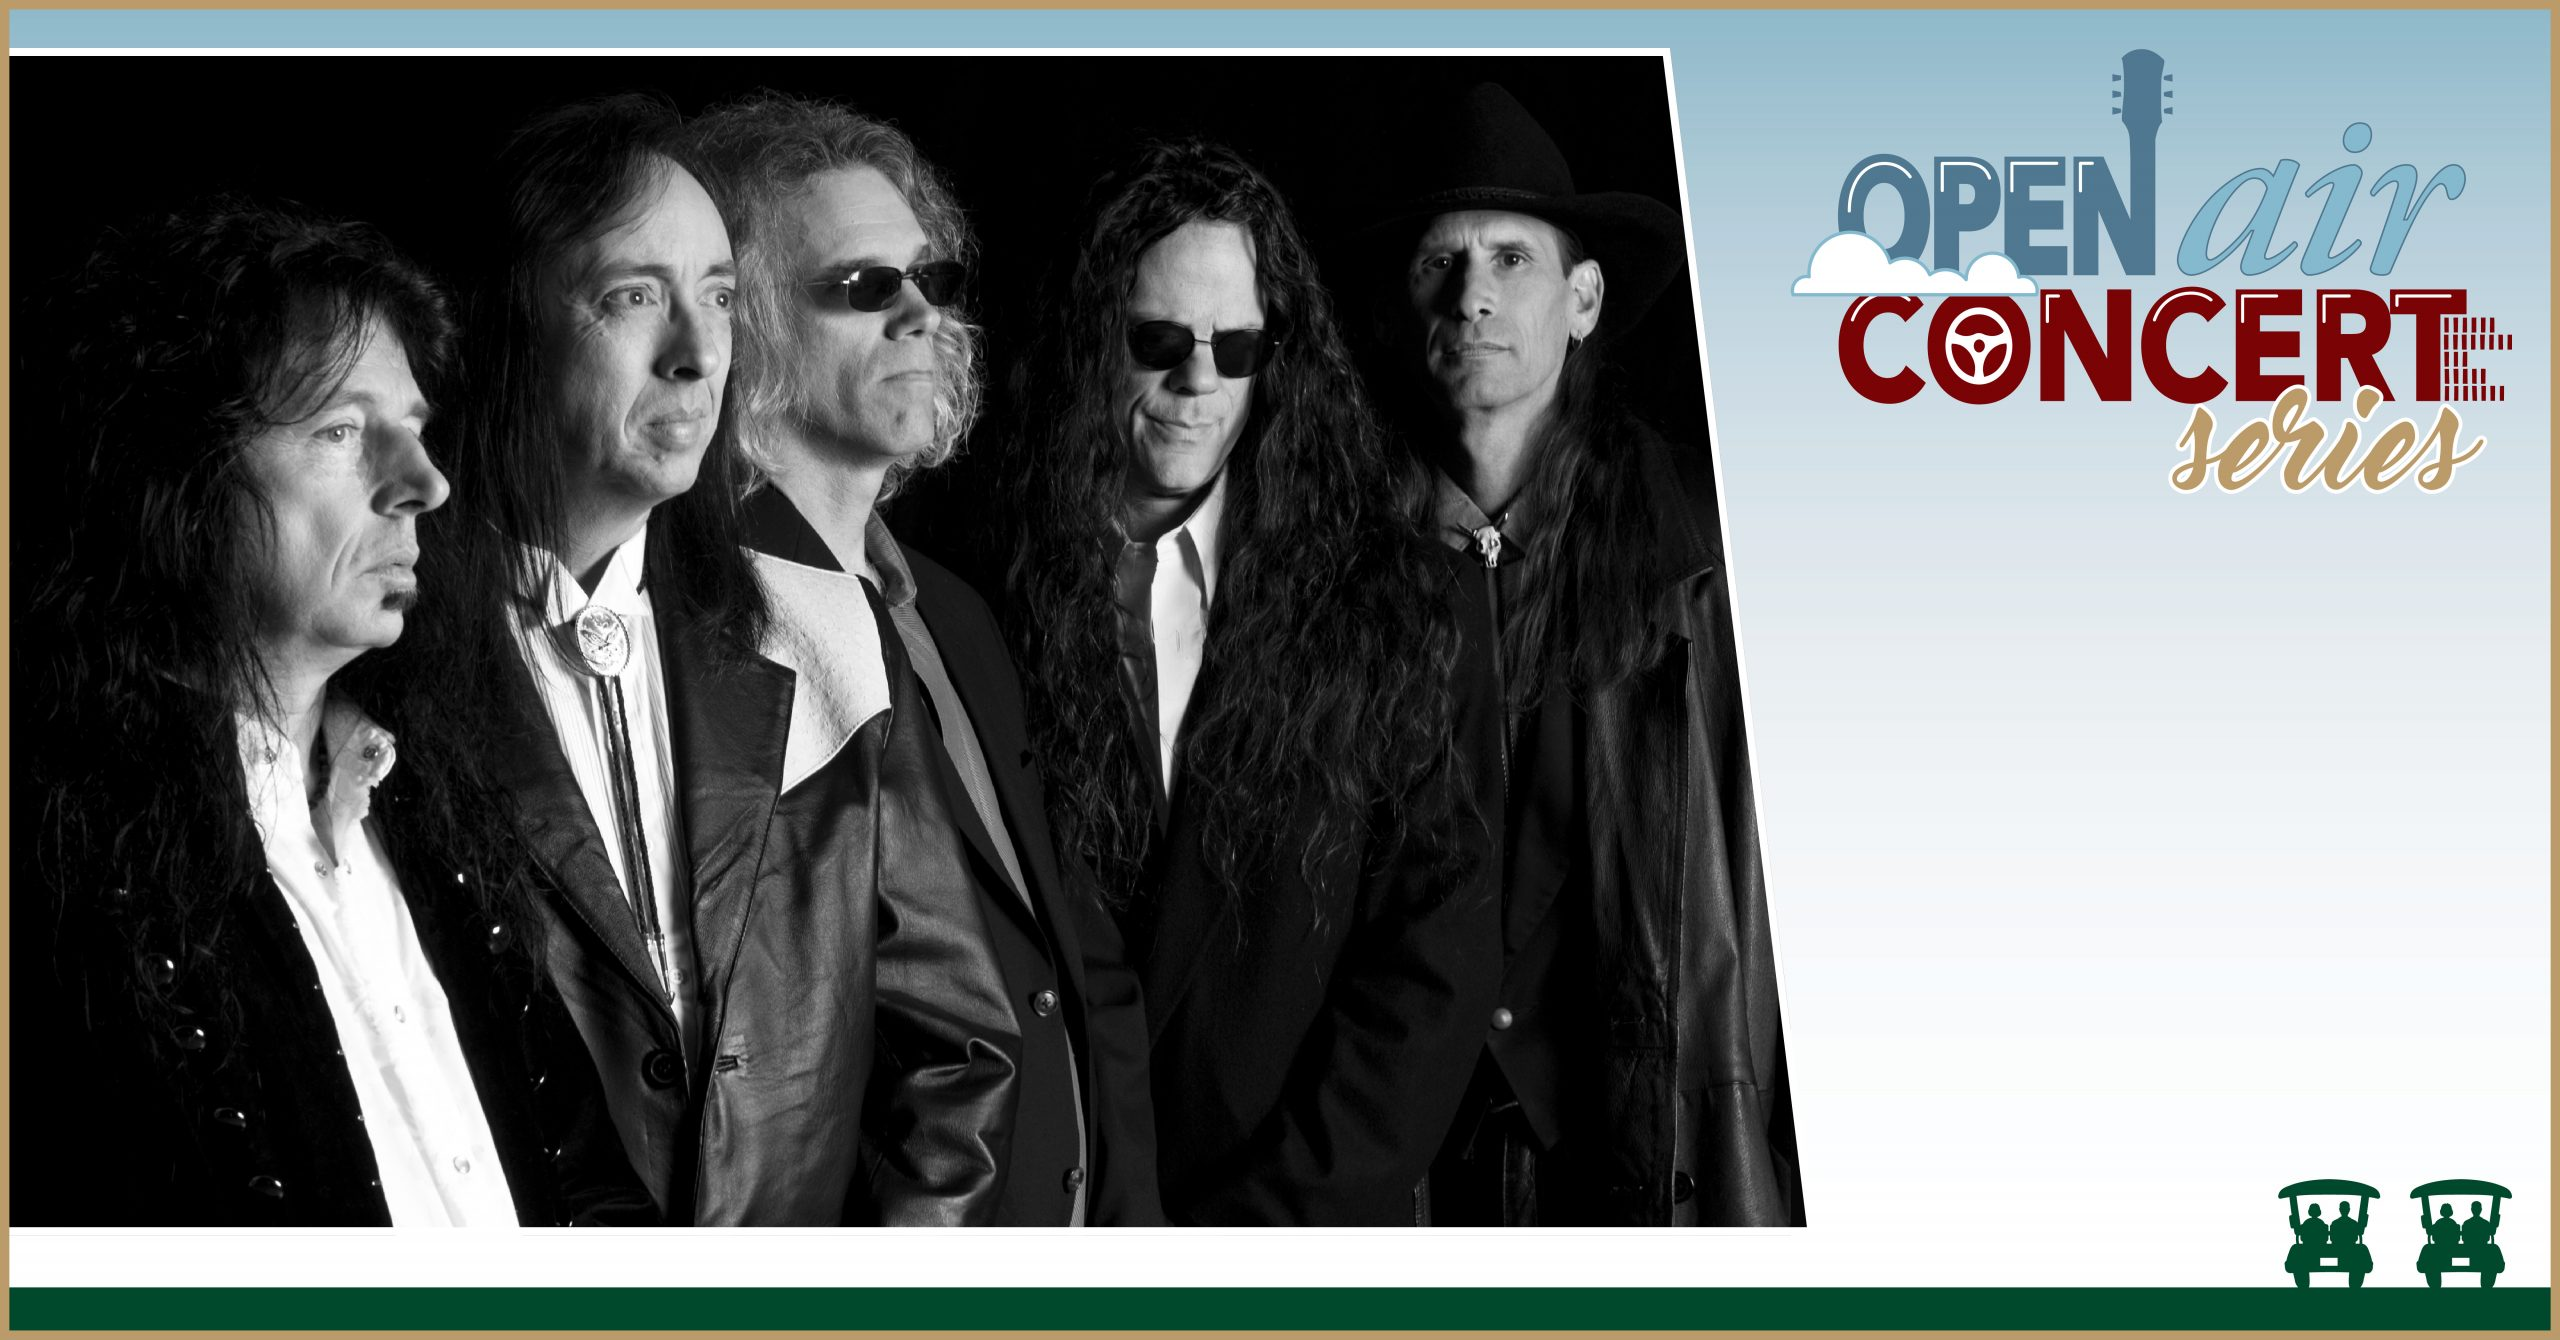 The Open Air Concert Series – Hotel California: A Salute to The Eagles